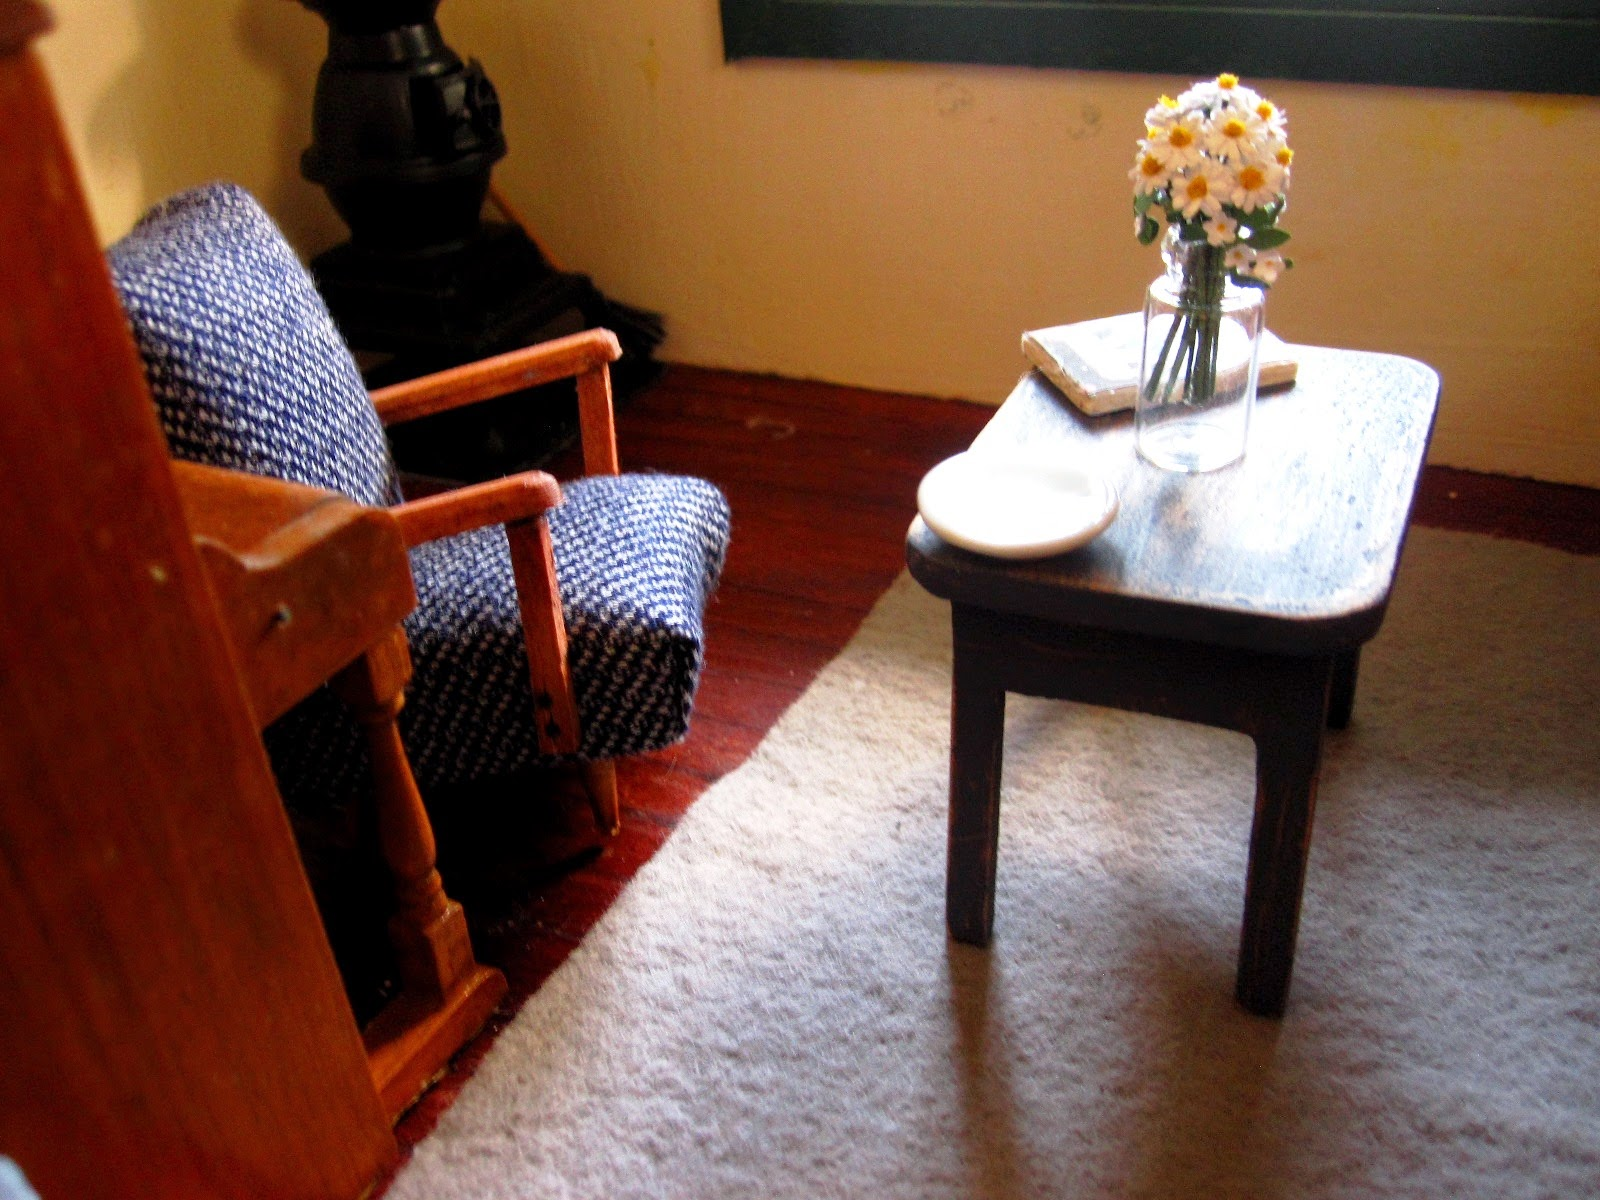 Dolls house miniature sitting area with a 1950s-style reading chair and a small shabby coffee table with a vase of daisies on it.